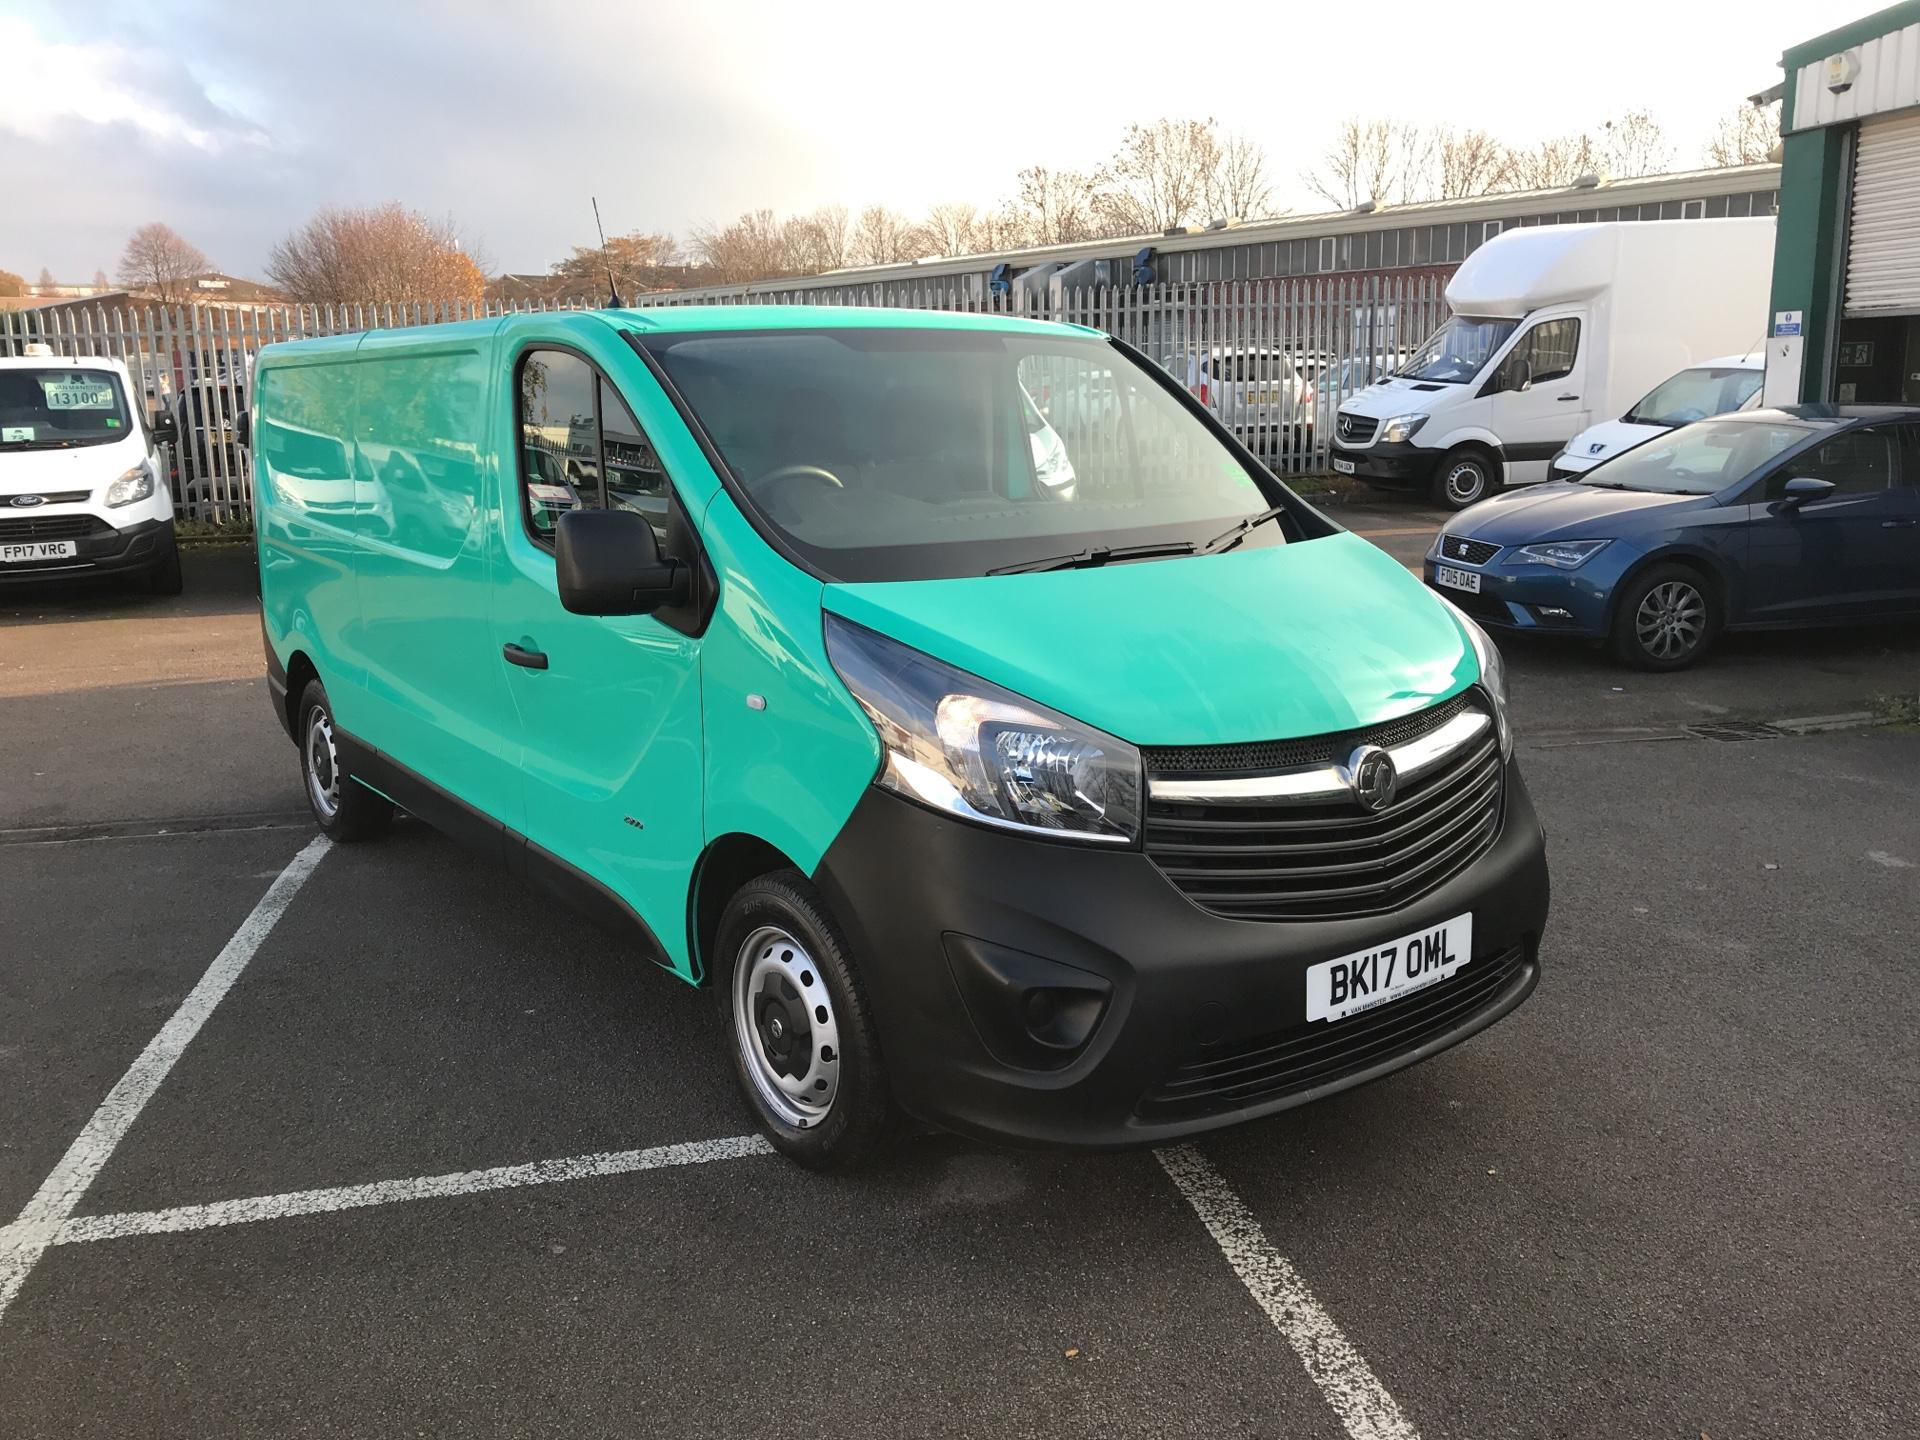 2017 Vauxhall Vivaro L2 H1 2900 1.6CDTI 95PS EURO 6 *VALUE RANGE VEHICLE - CONDITION REFLECTED IN PRICE* (BK17OML)